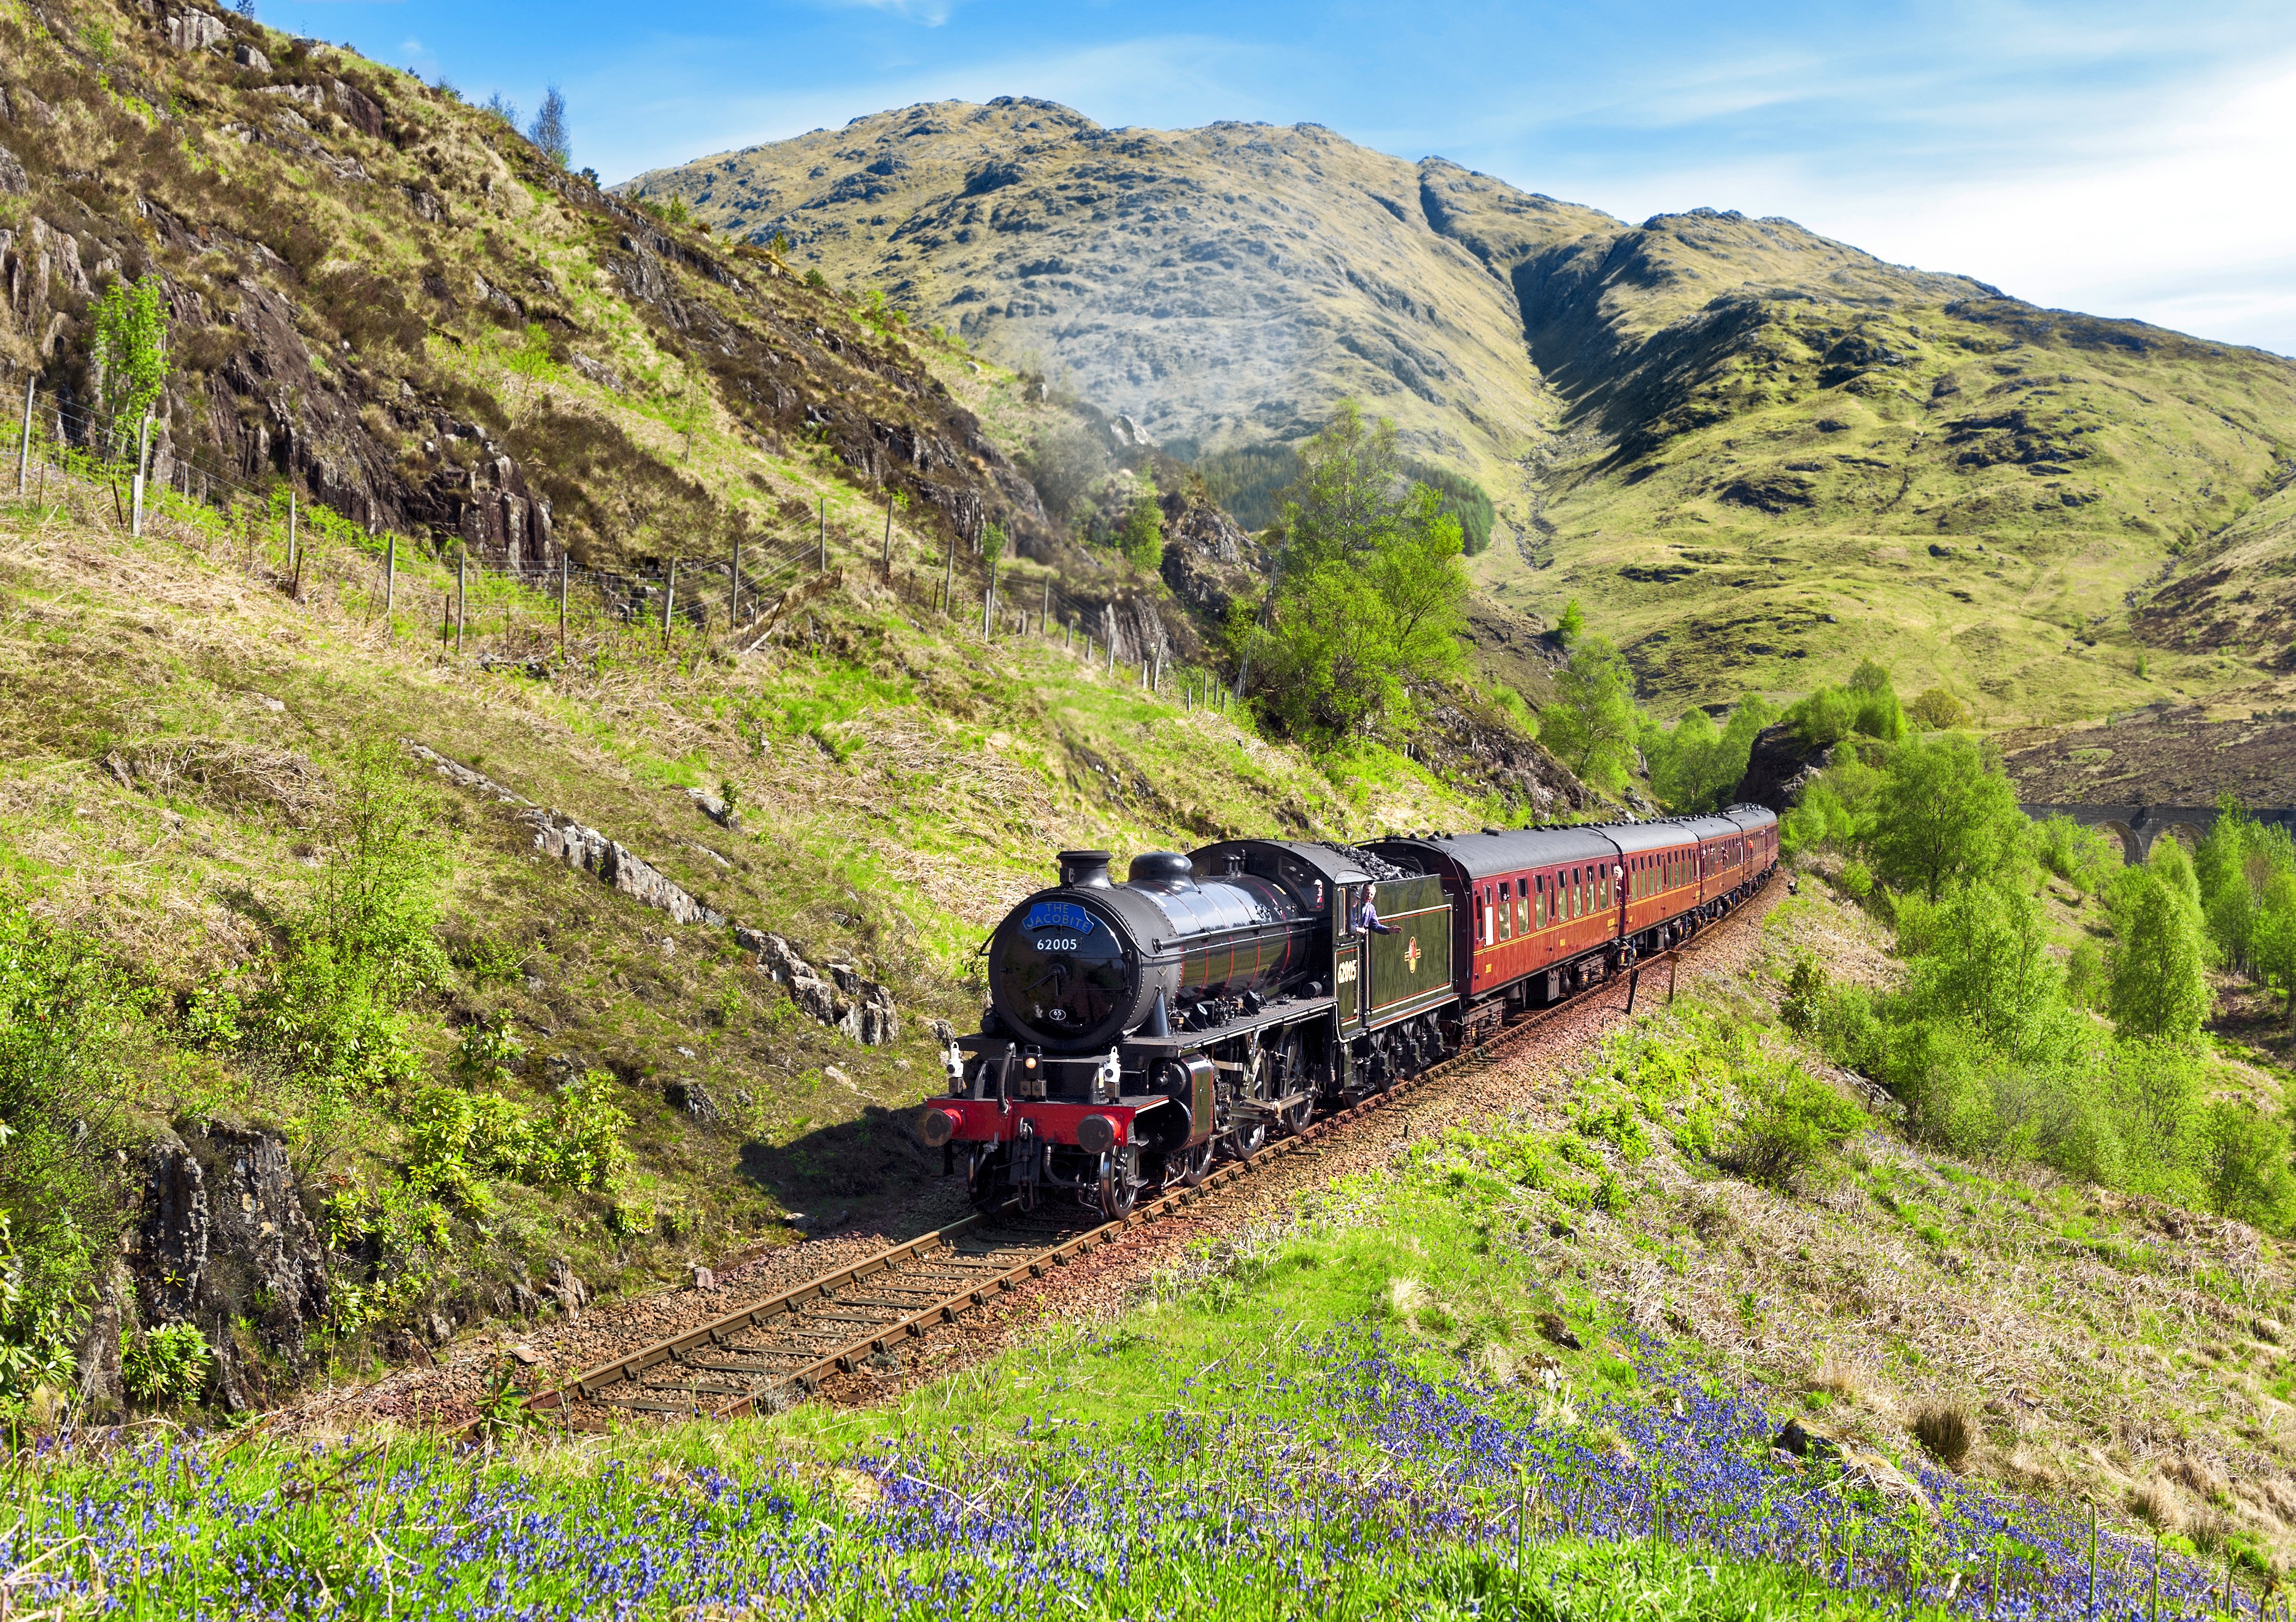 Gohagan_2018_CelticLands_02_JacobiteSteamTrain_Ref 29 Jacobite climbing to Glenfinnan May Dick Manton.jpg